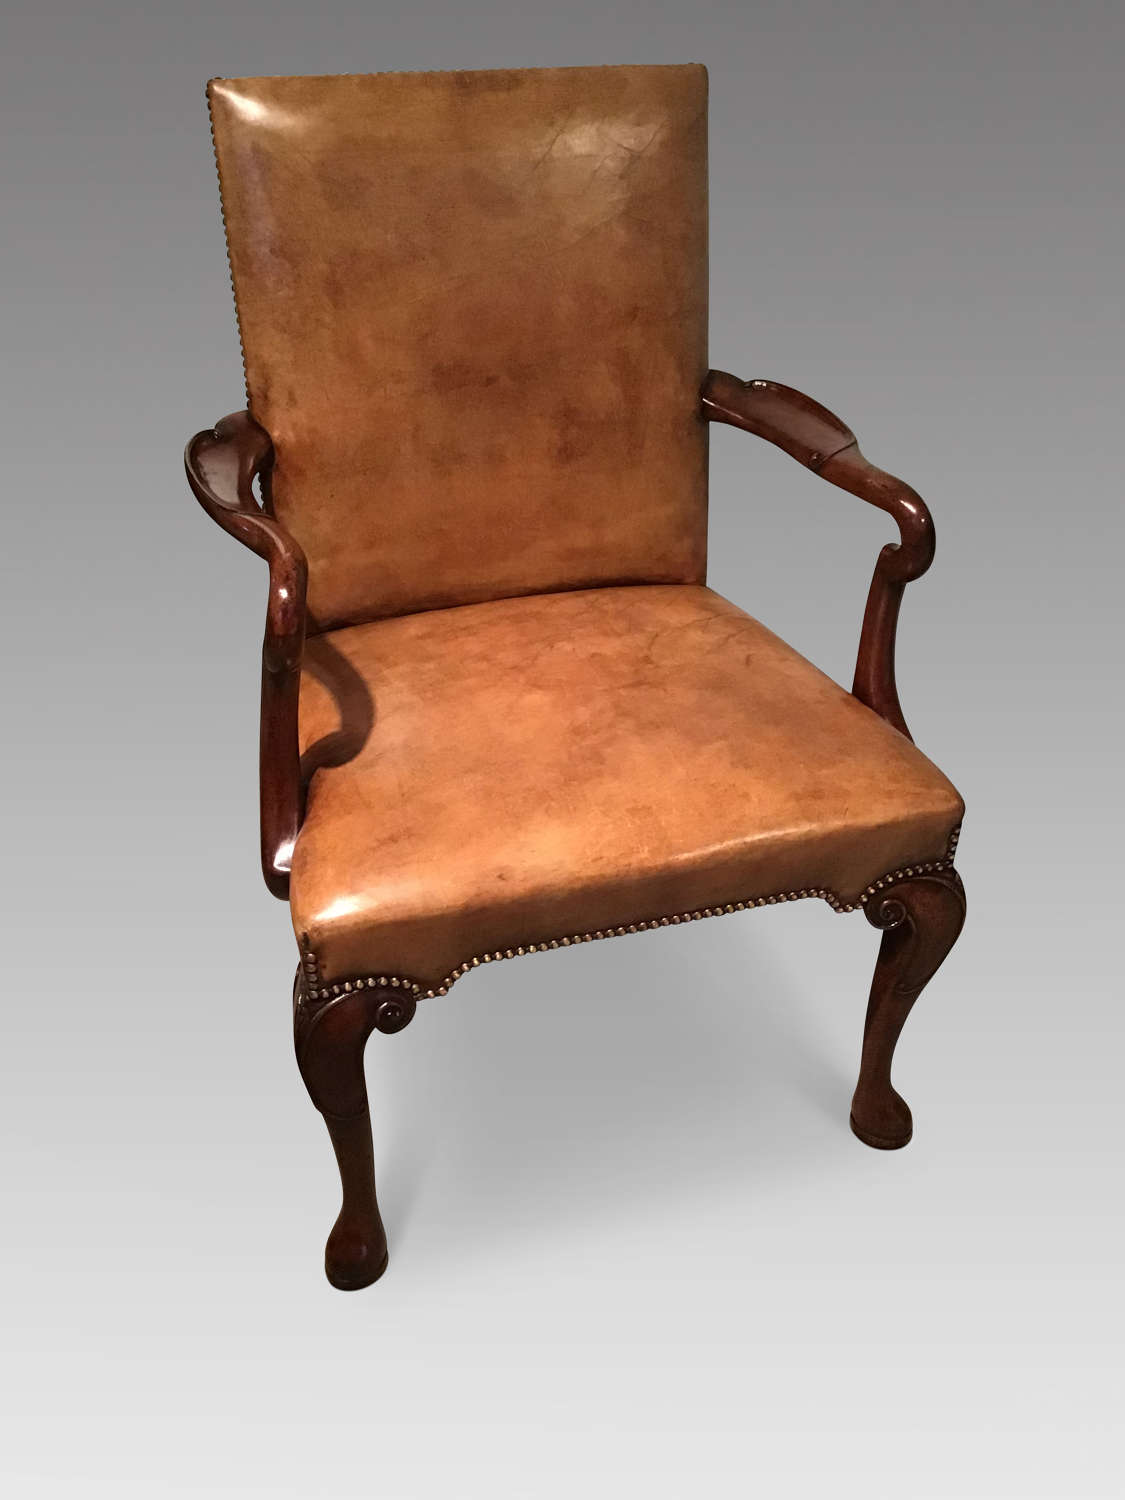 Mahogany and leather open armchair